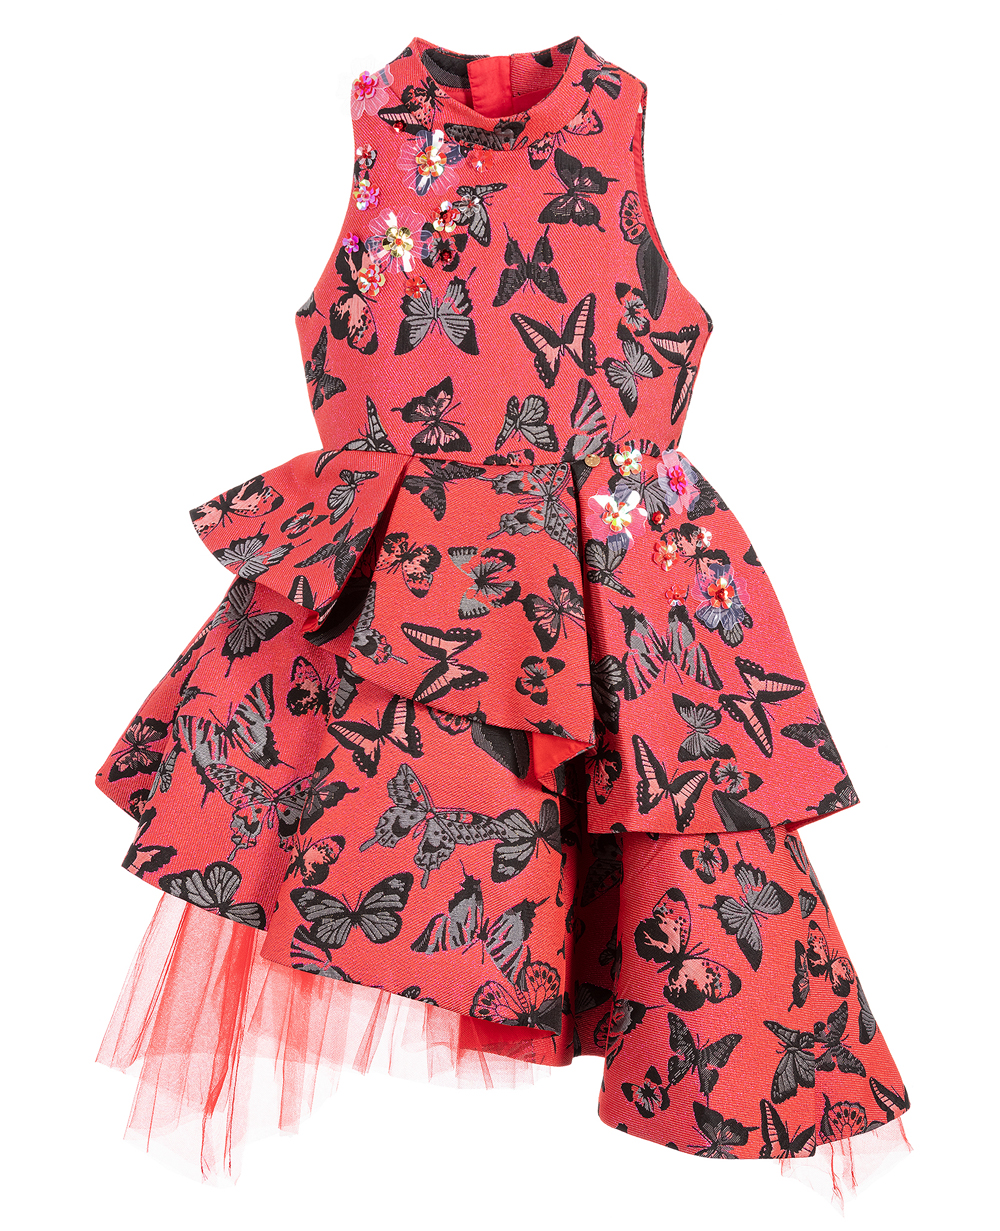 Red Brocade Princess Dress  Sleeveless Floral Dress